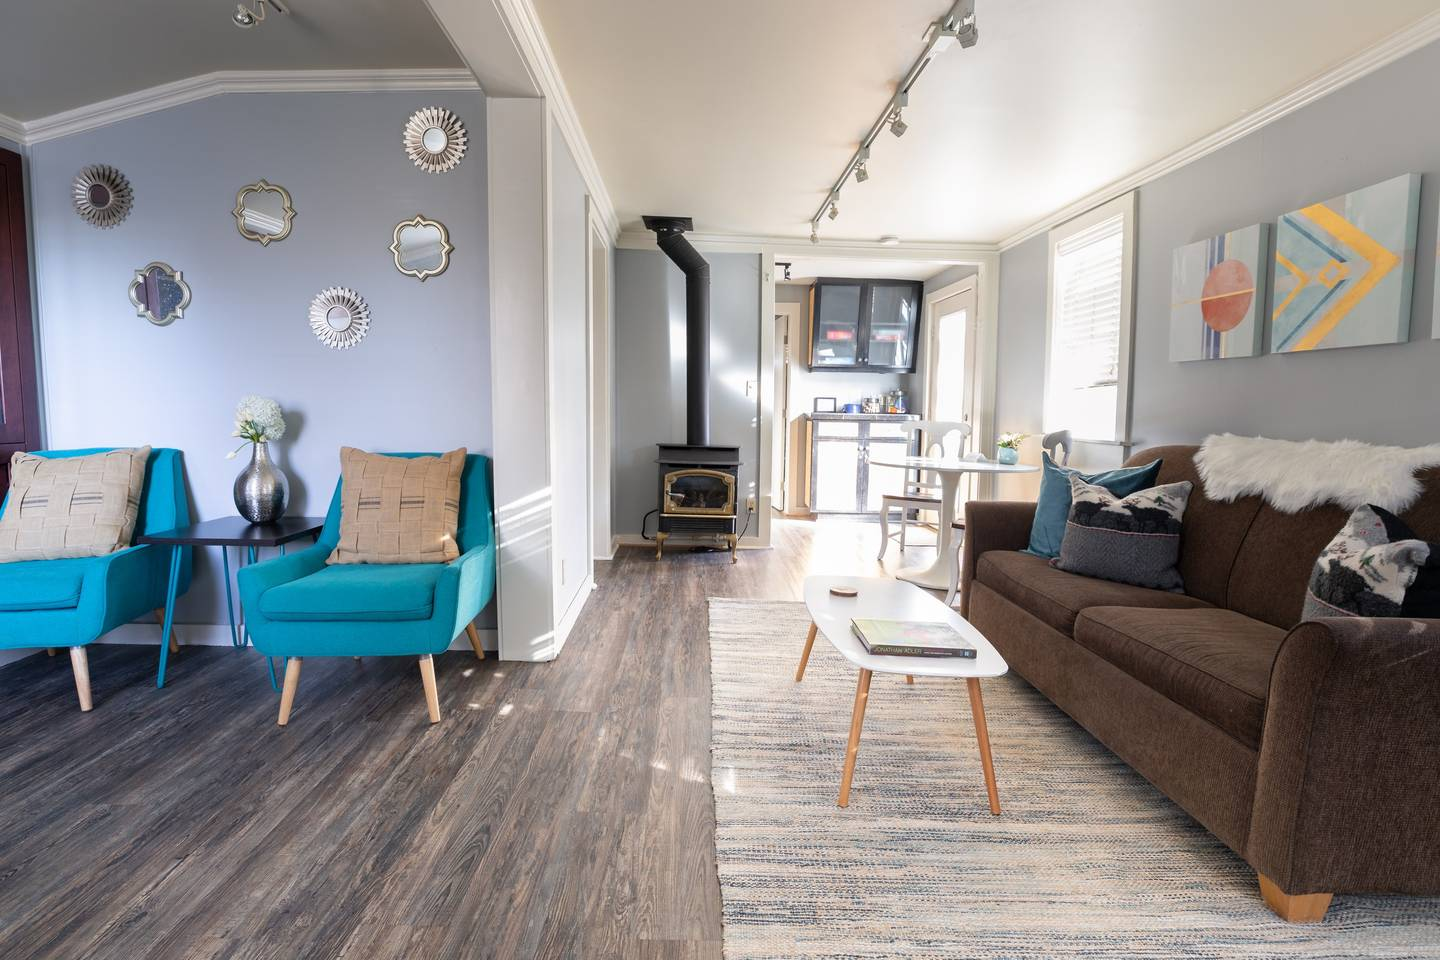 airbnb downtown bend oregon under $100